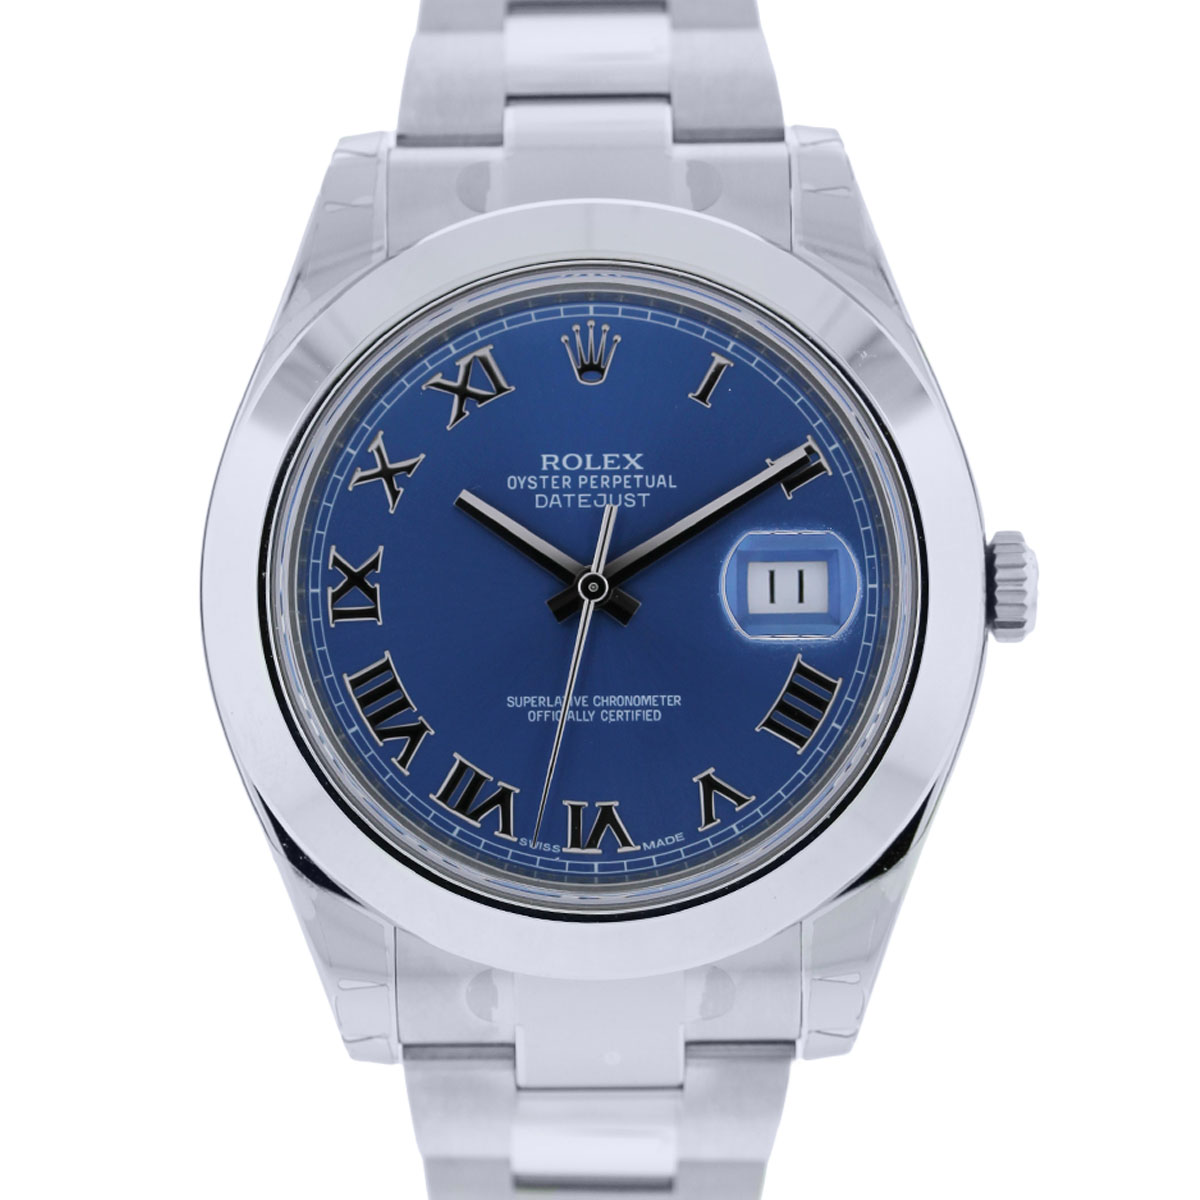 You are viewing this Rolex Datejust Two 116300 Blue Dial Stainless Steel Watch!